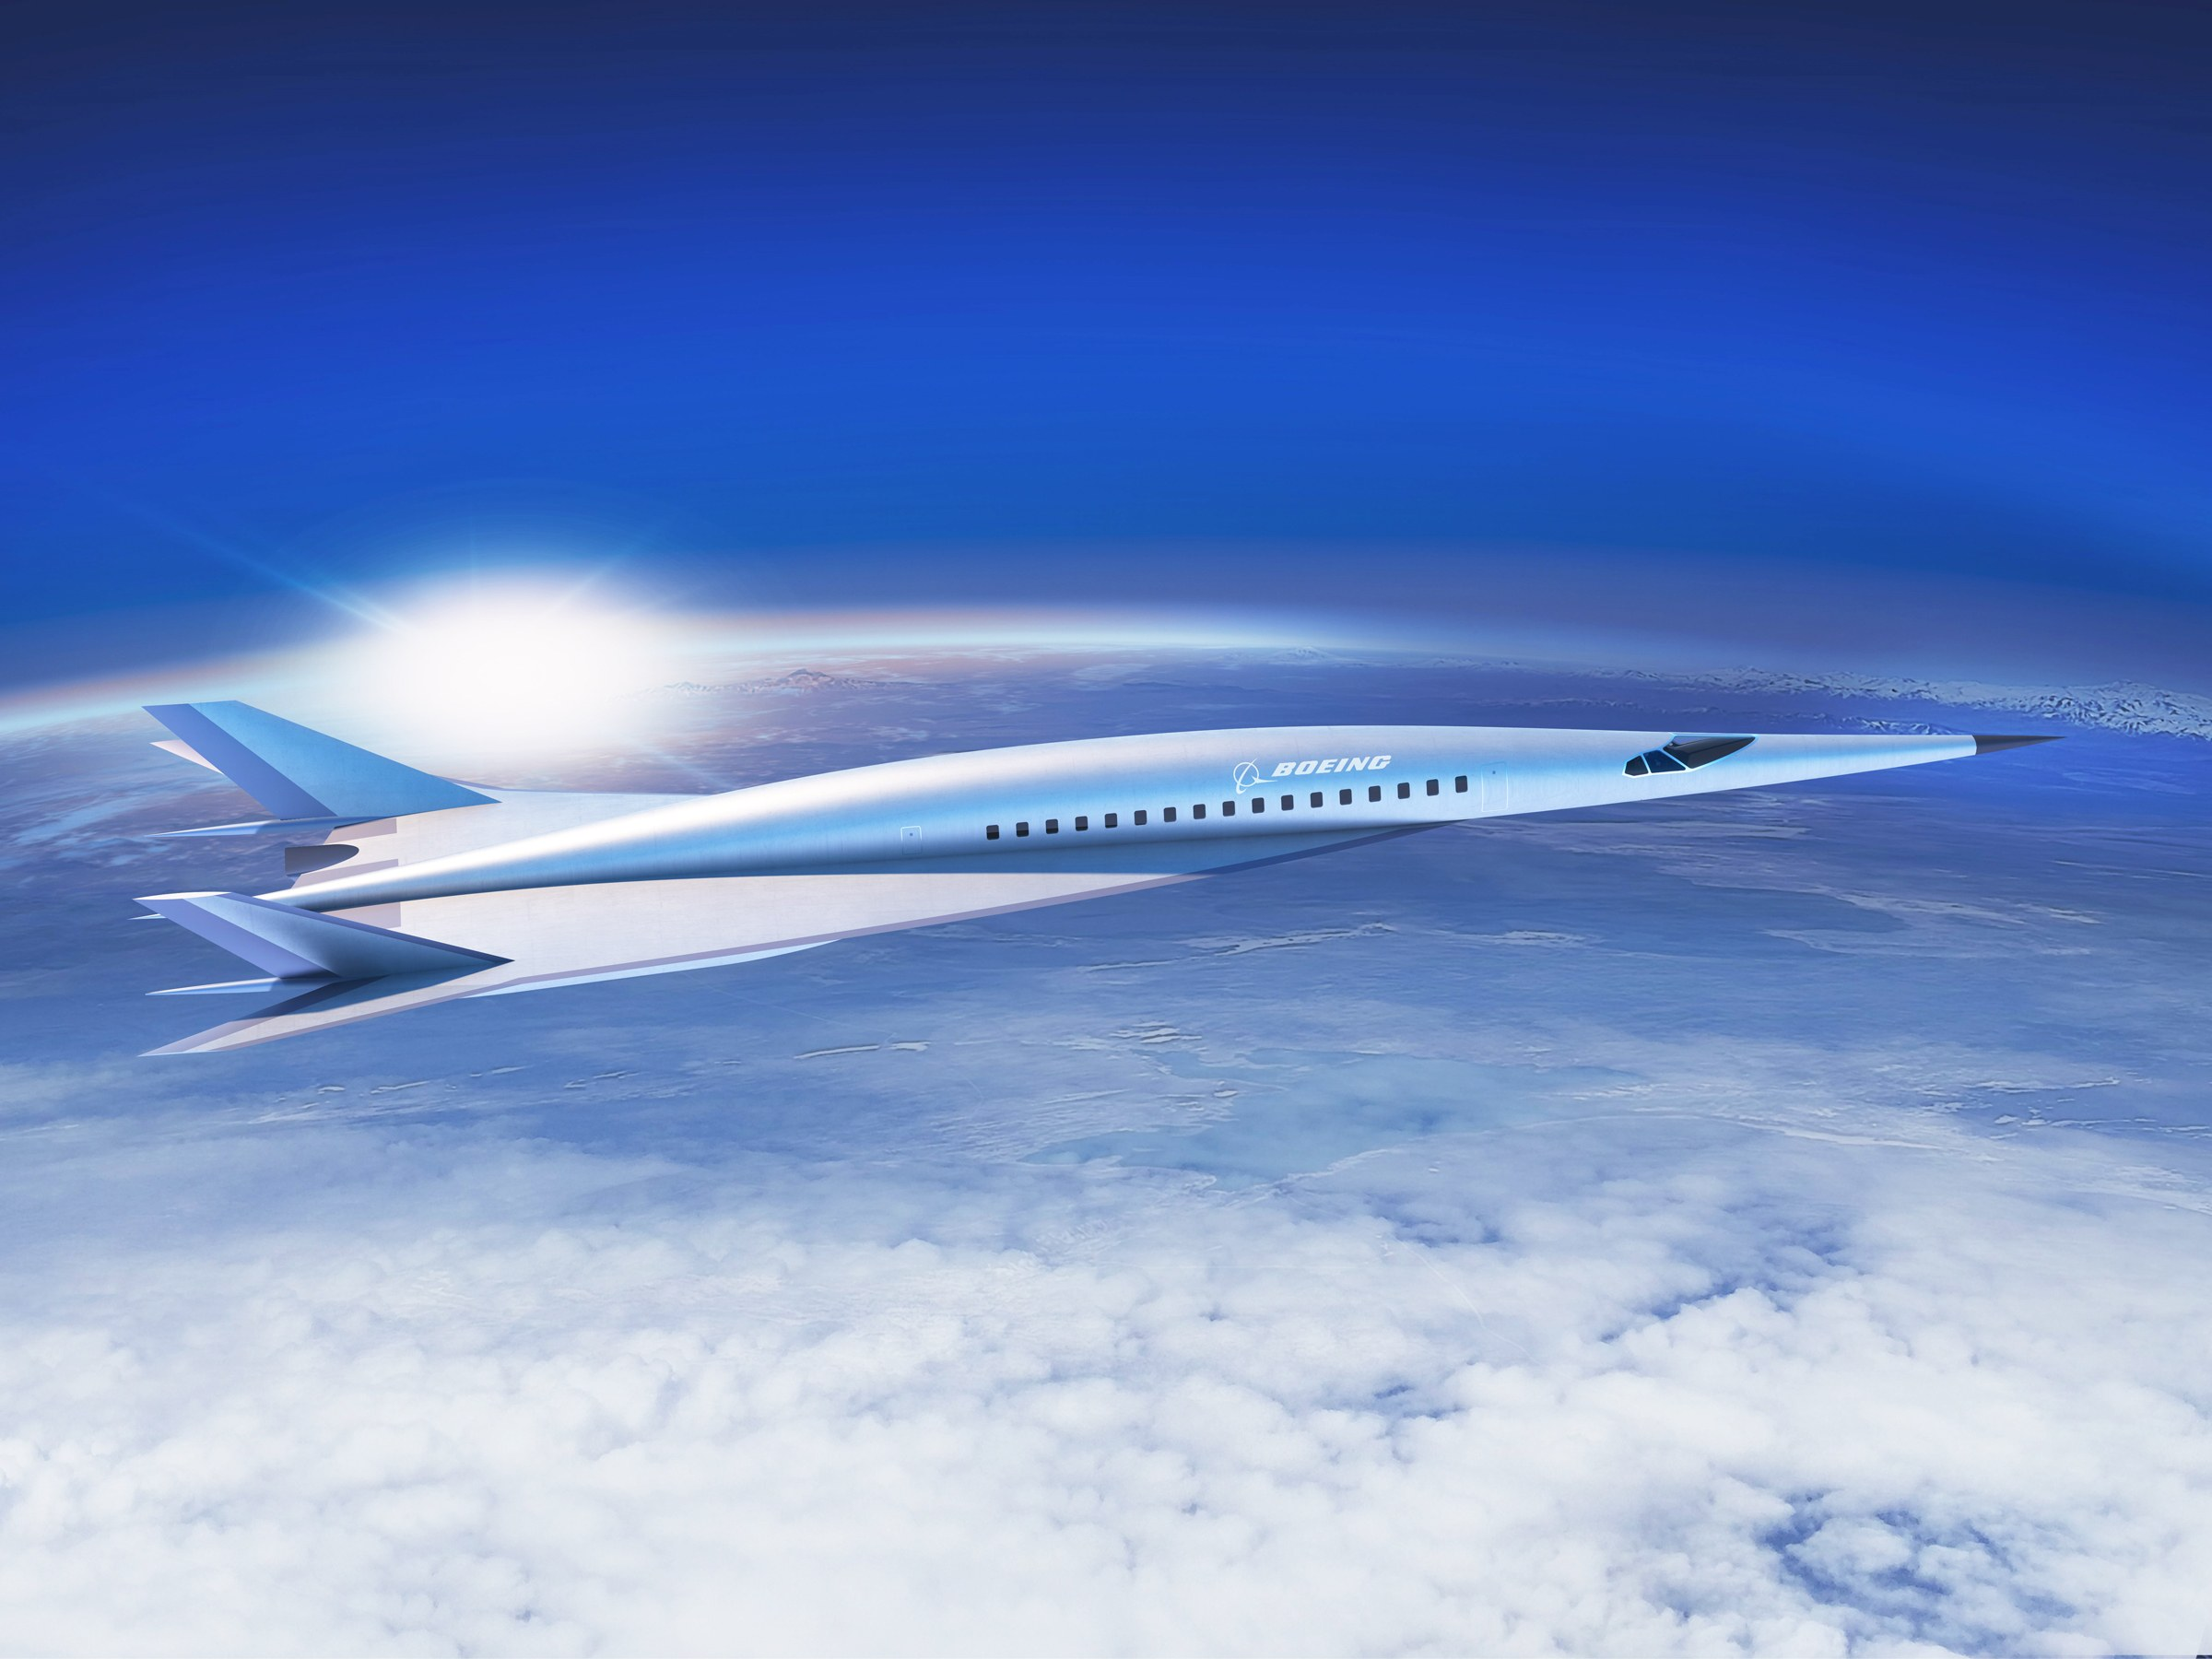 Boeing concept